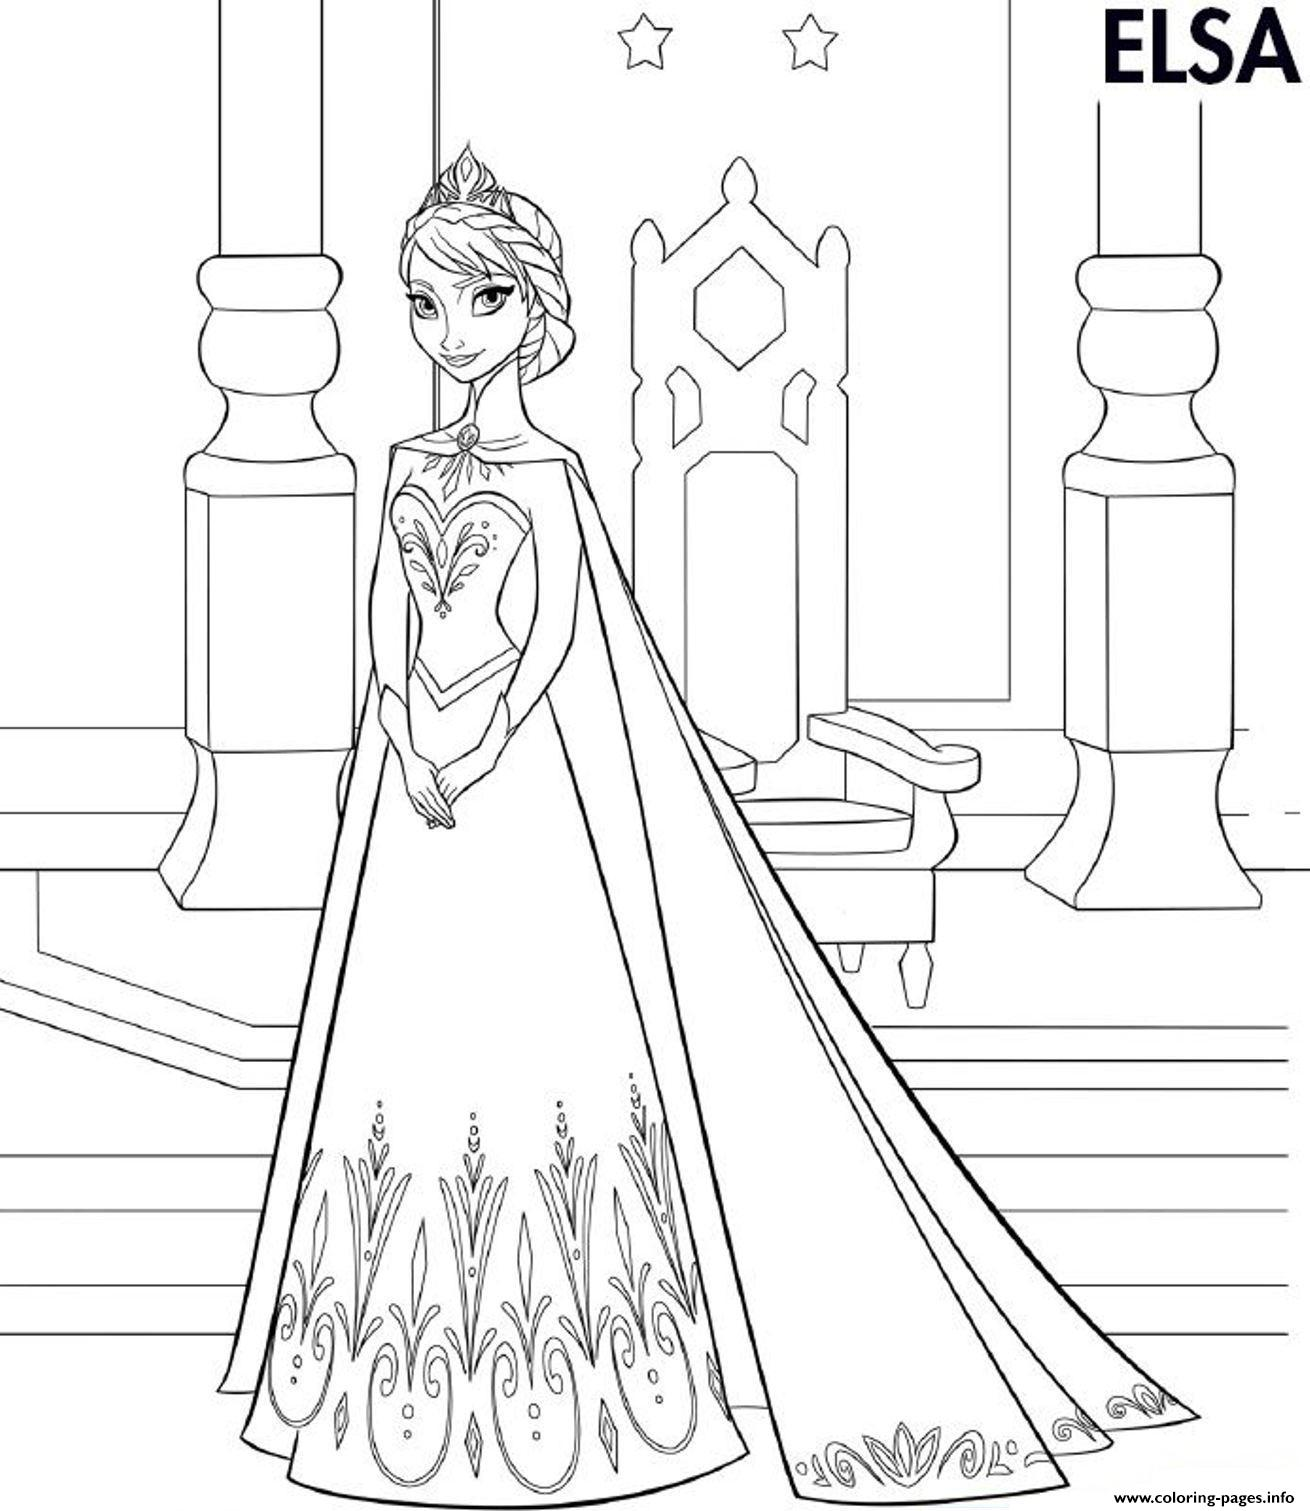 elsa frozen aa6c coloring pages